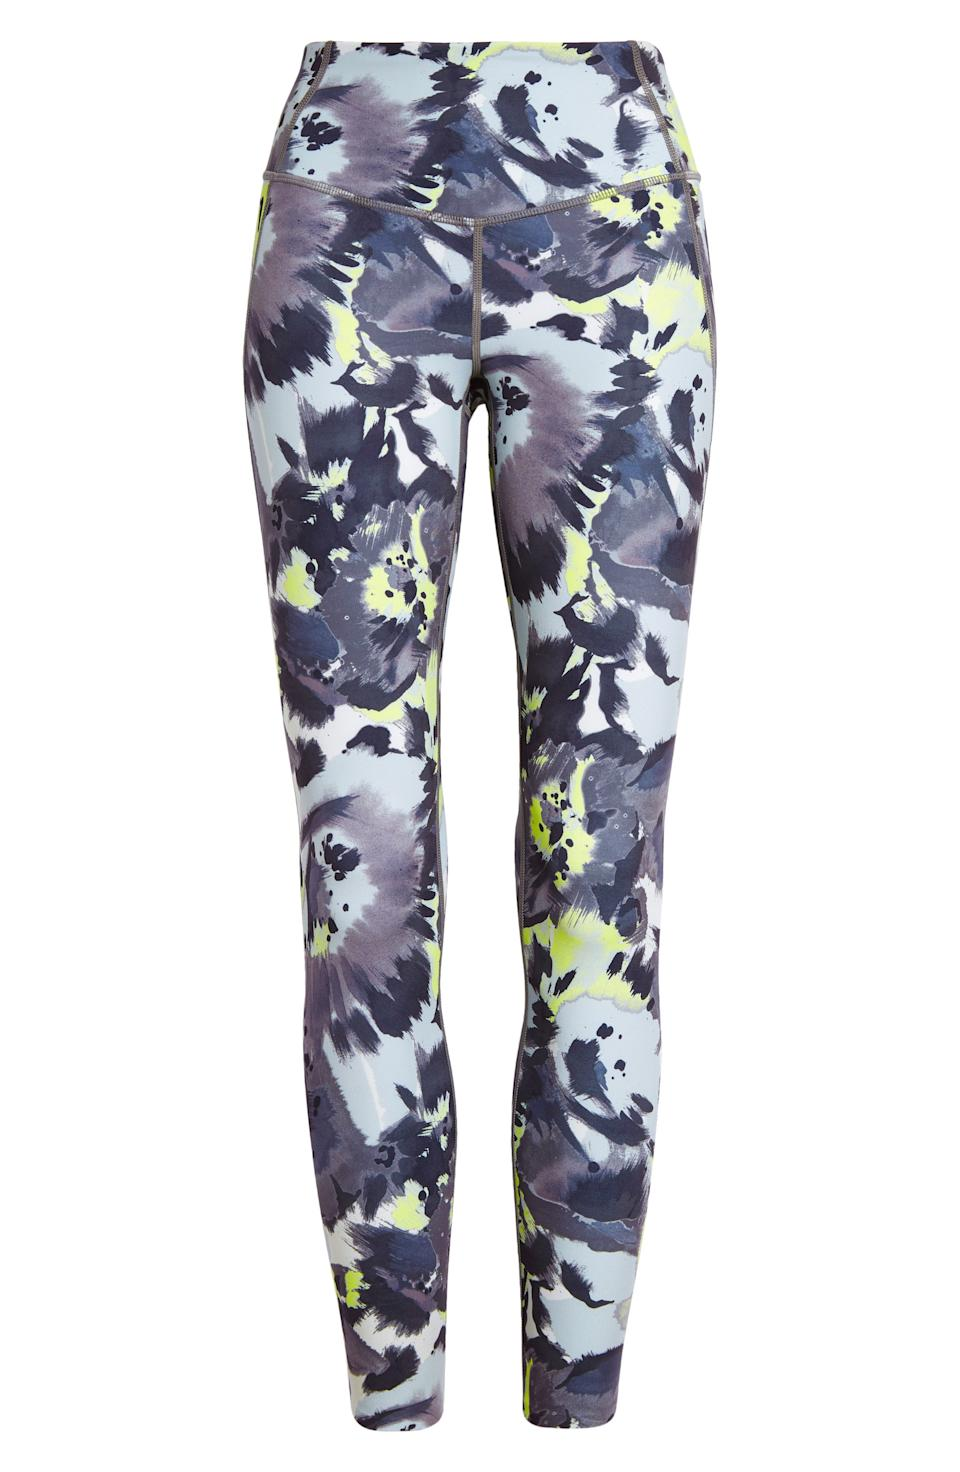 """<h3>Zella Studio Lite High Waist Legging<br></h3><br>We came for the splashy artistic print and stayed for the """"incredibly lightweight"""" feel of these pocket leggings from Nordstrom's fanatically beloved in-house activewear brand. Thanks to the proprietary """"Zeltek"""" fabric, they're also cooling and moisture-wicking.<br><br><strong>Zella</strong> Studio Lite High Waist Pocket 7/8 Leggings, $, available at <a href=""""https://go.skimresources.com/?id=30283X879131&url=https%3A%2F%2Fwww.nordstrom.com%2Fs%2Fzella-studio-lite-high-waist-pocket-7-8-leggings%2F5480229"""" rel=""""nofollow noopener"""" target=""""_blank"""" data-ylk=""""slk:Nordstrom"""" class=""""link rapid-noclick-resp"""">Nordstrom</a>"""